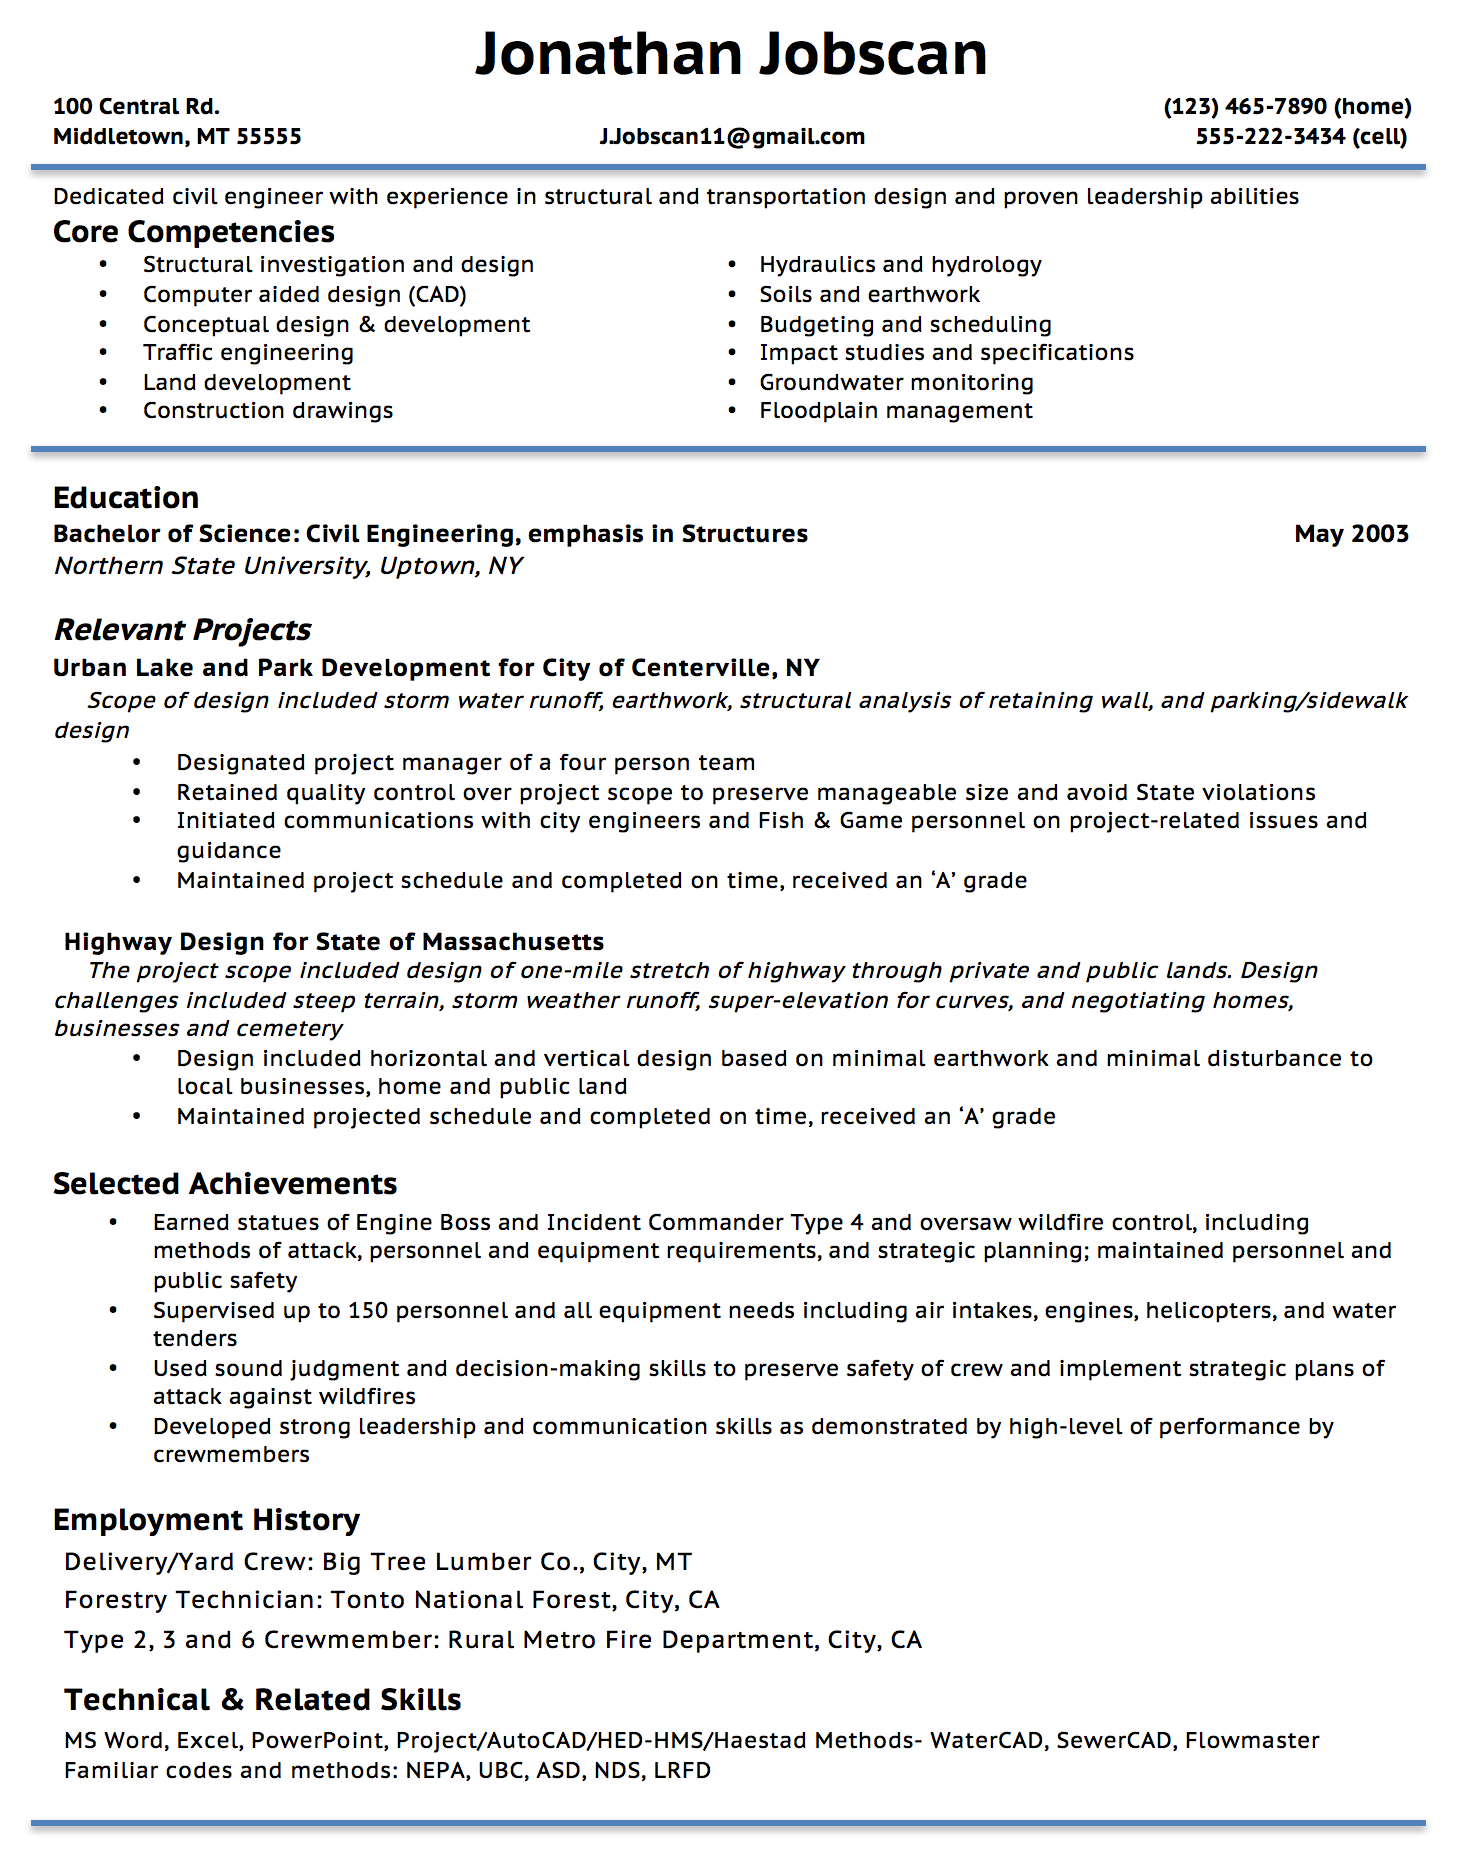 Functional Resume Example  How To Write Resume